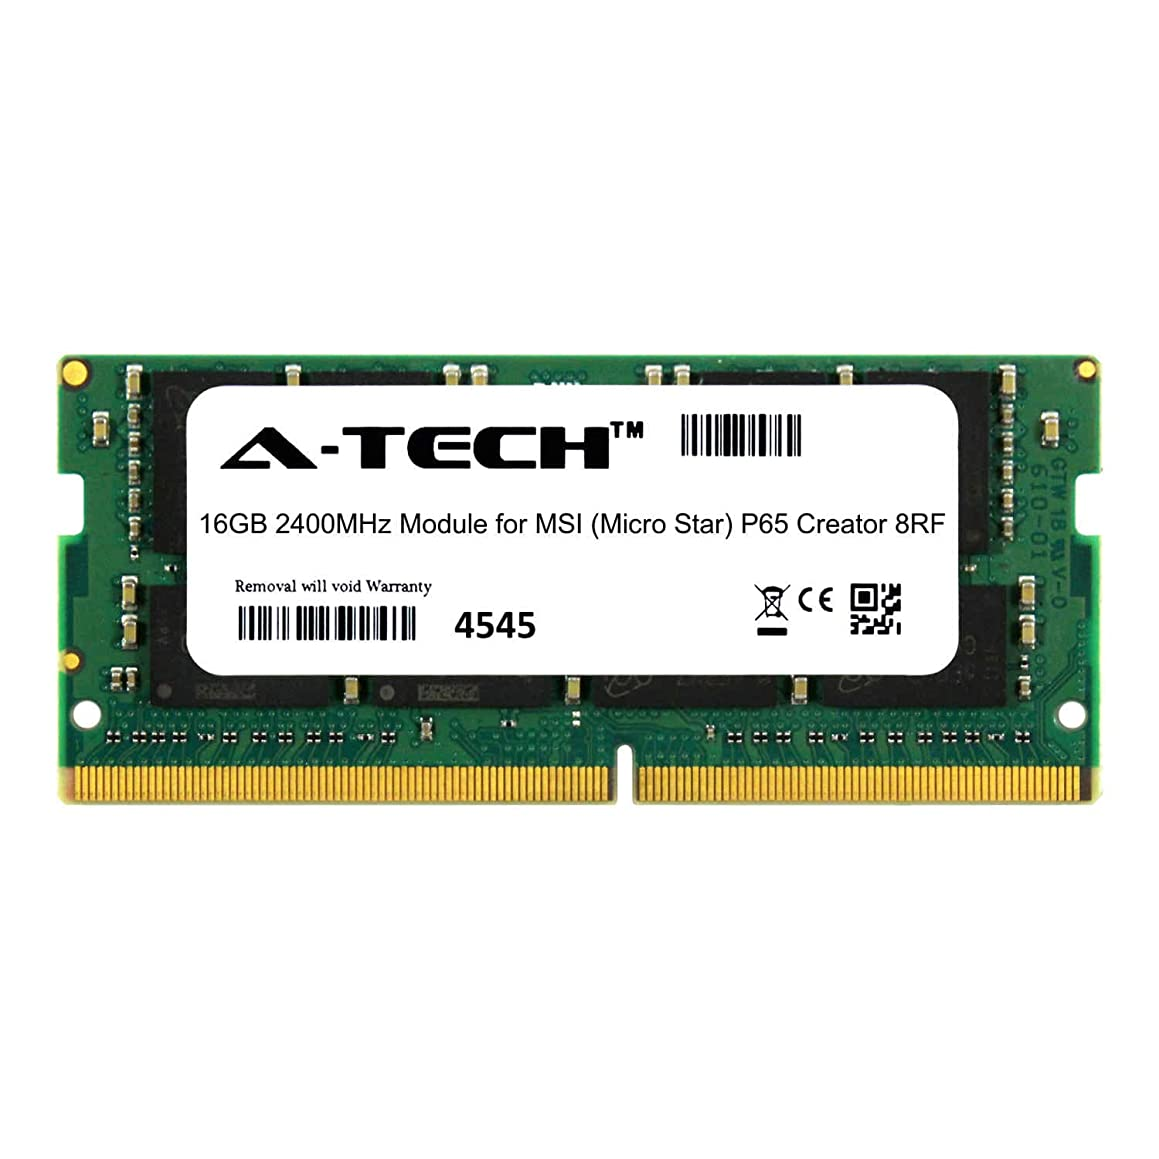 A-Tech 16GB Module for MSI (Micro Star) P65 Creator 8RF Laptop & Notebook Compatible DDR4 2400Mhz Memory Ram (ATMS367842A25831X1)